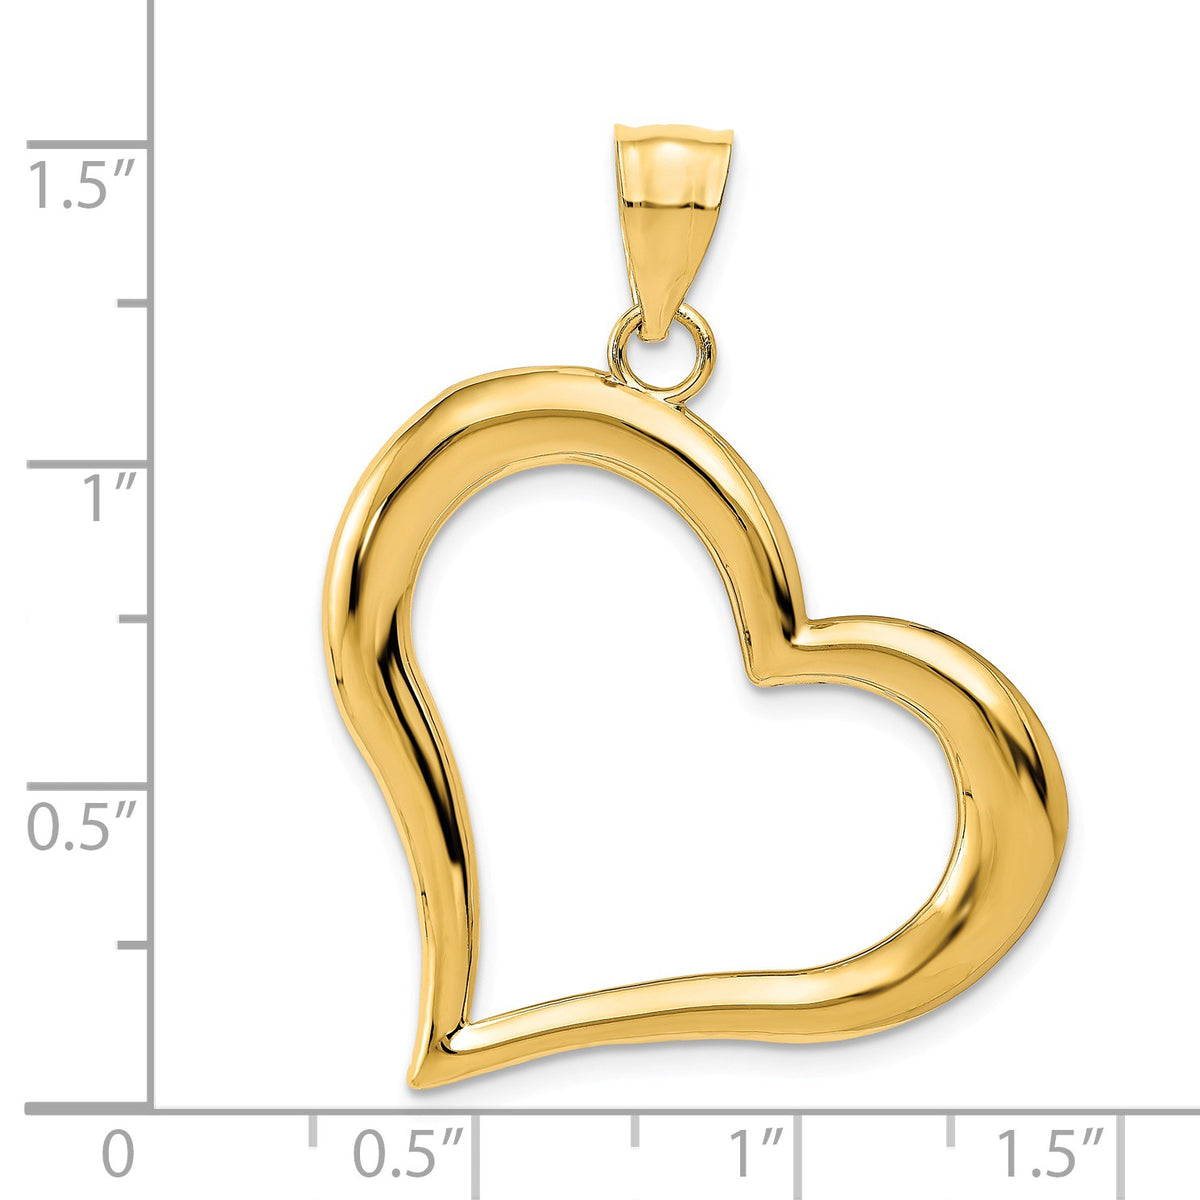 Alternate view of the 14k Yellow Gold Open Heart Pendant, 30mm by The Black Bow Jewelry Co.